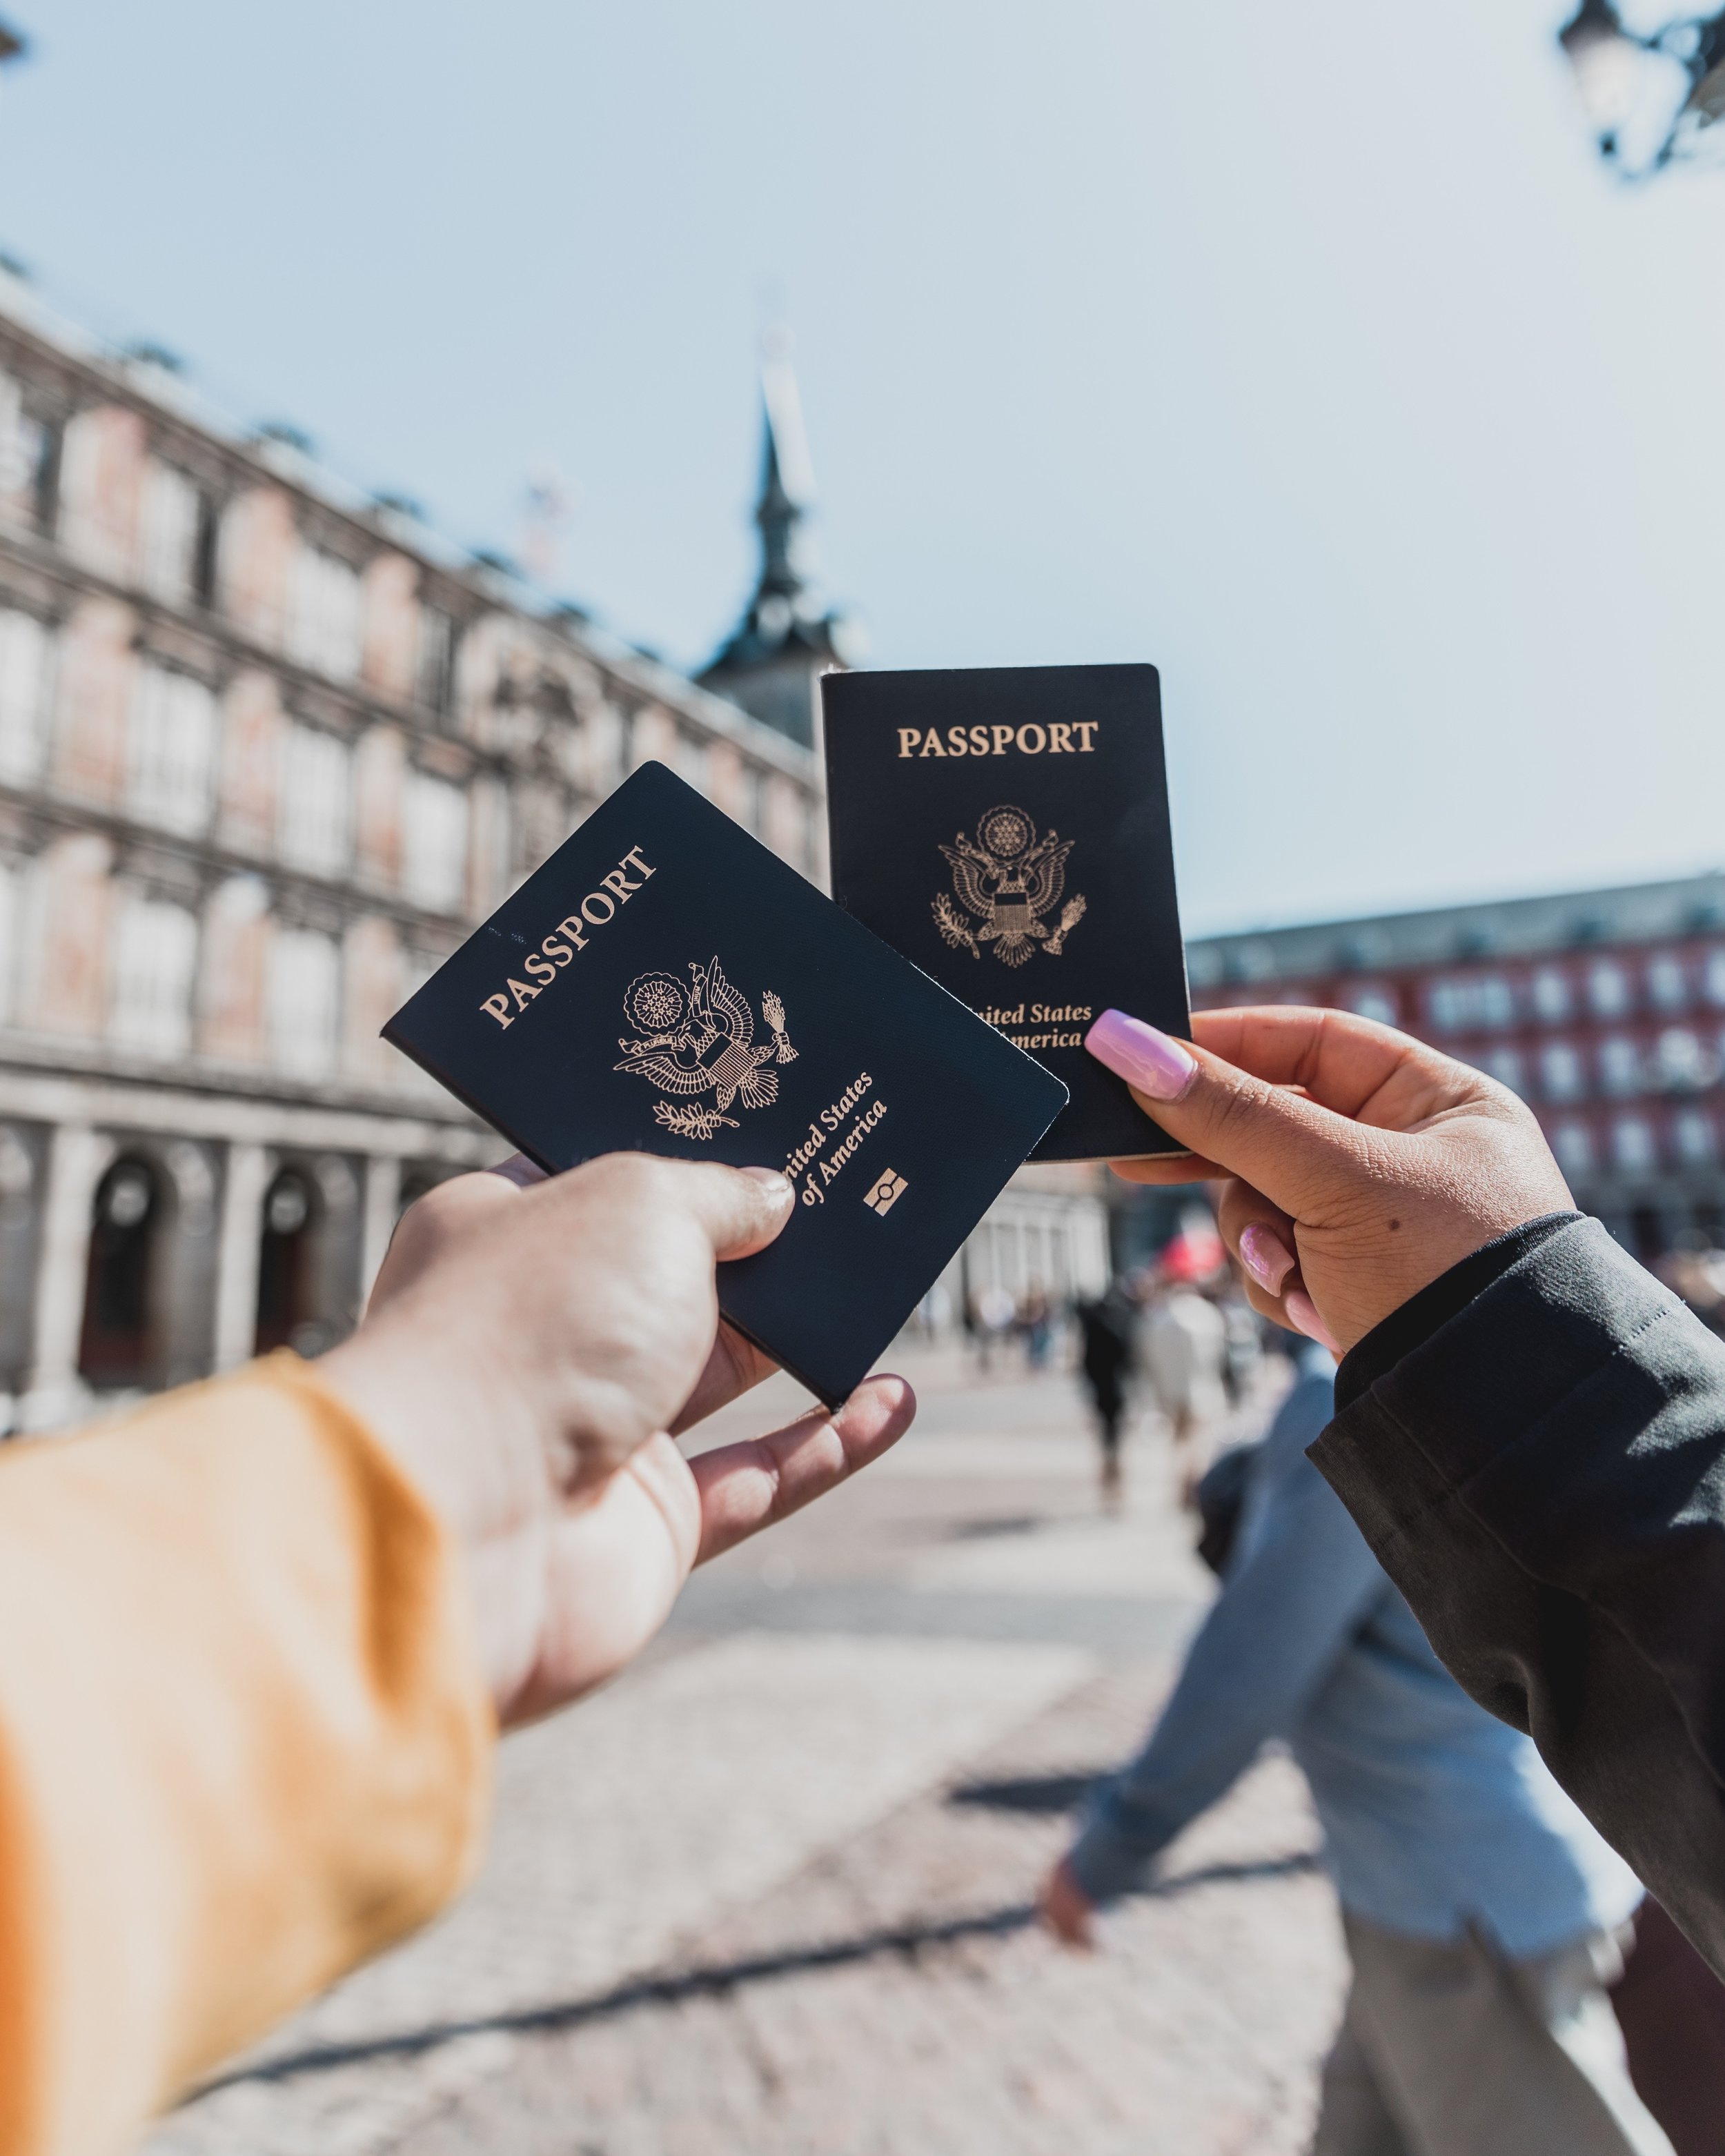 two people holding american passports with monuments in the background